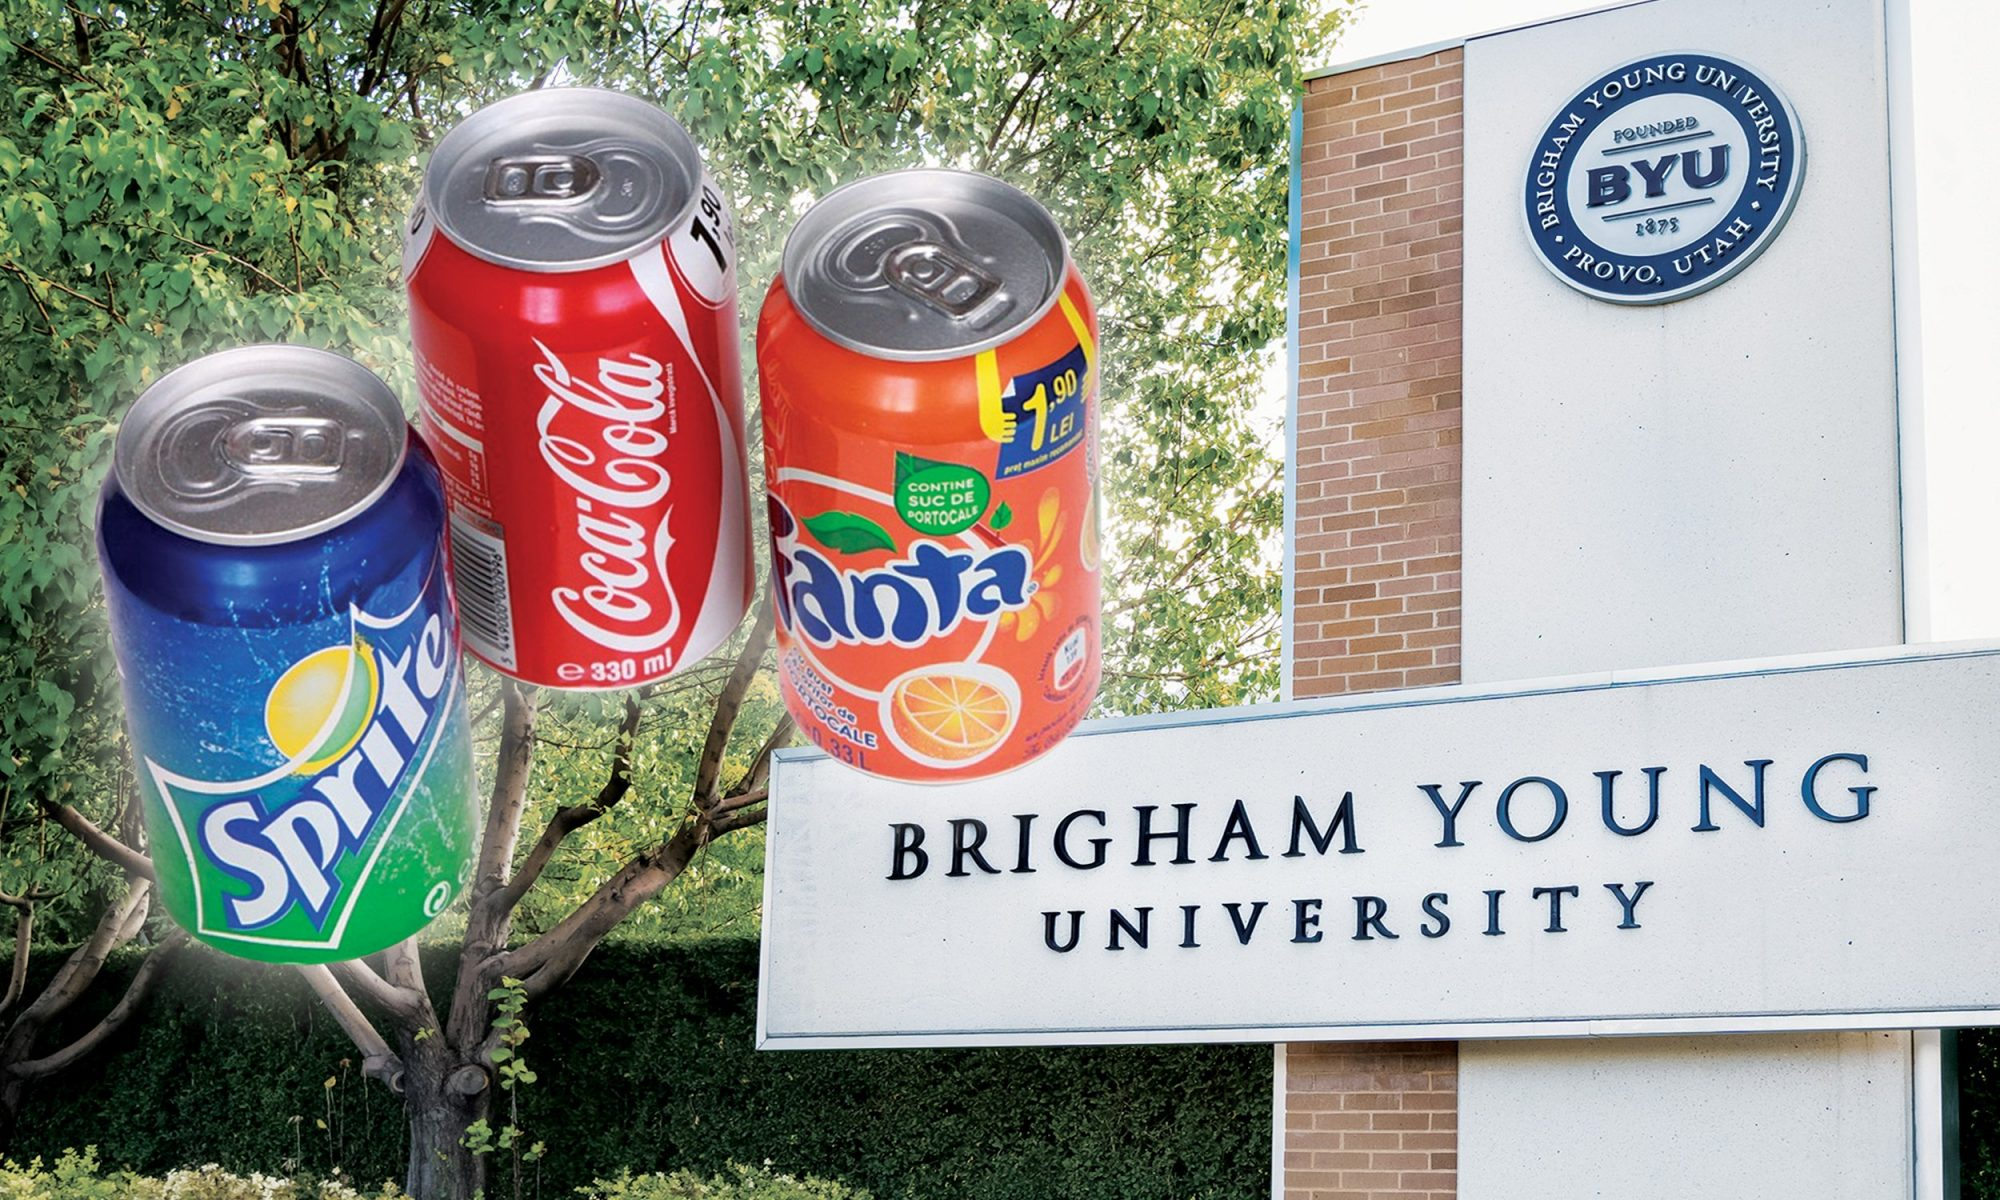 EC: Brigham Young University Will Sell Caffeinated Soda, Reversing Decades-Old Policy